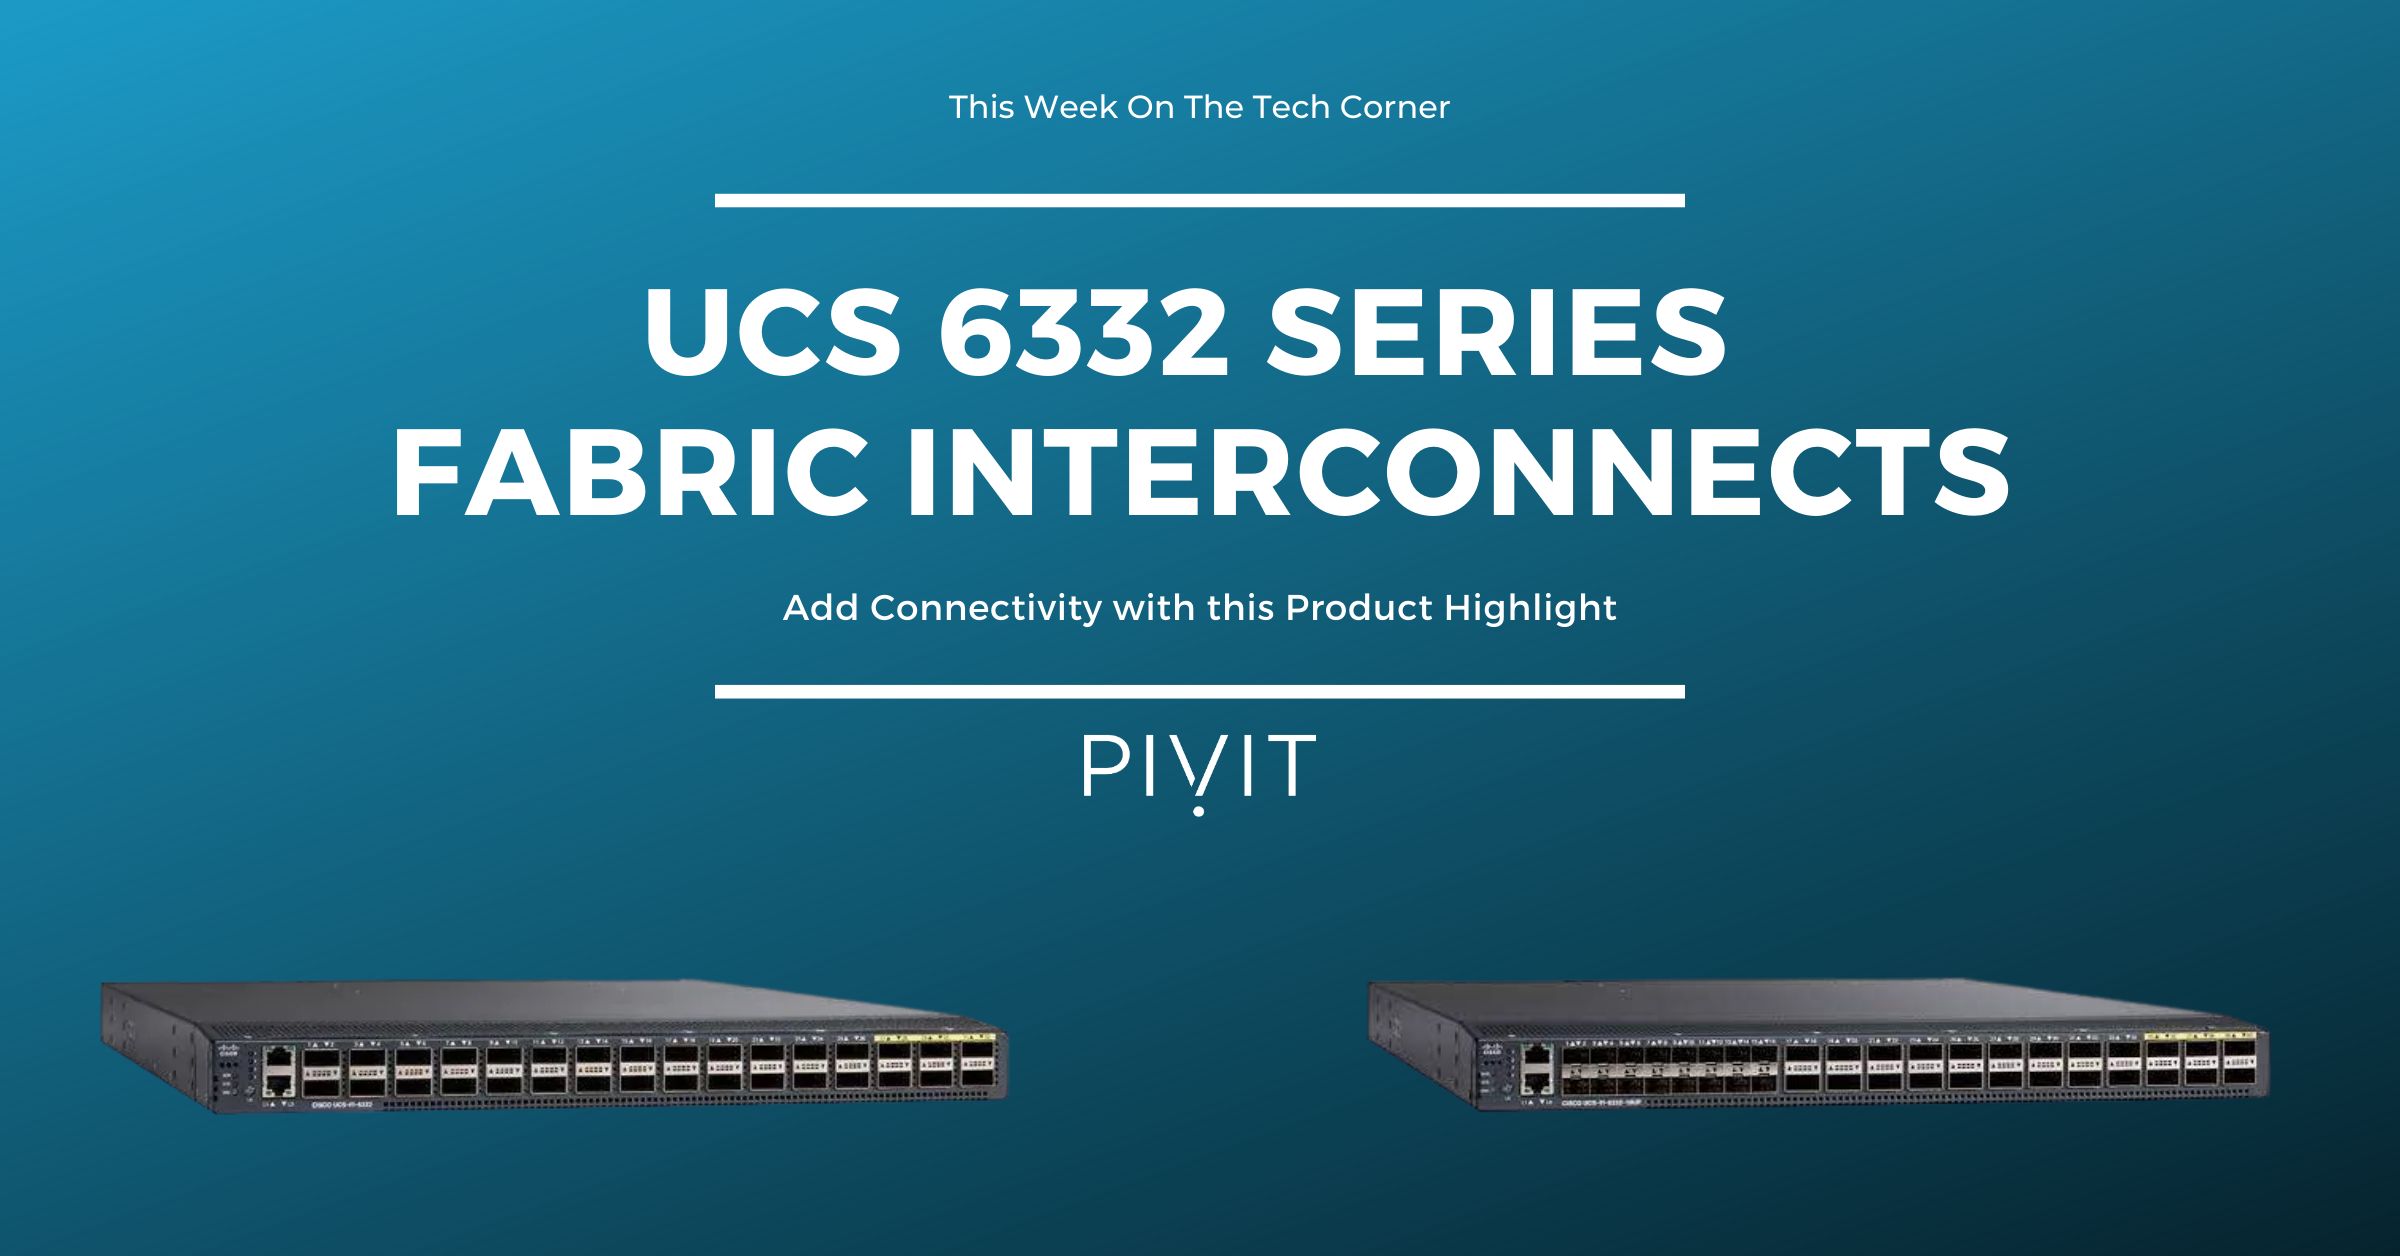 All You Need to Know About the Cisco UCS 6332 Fabric Interconnect